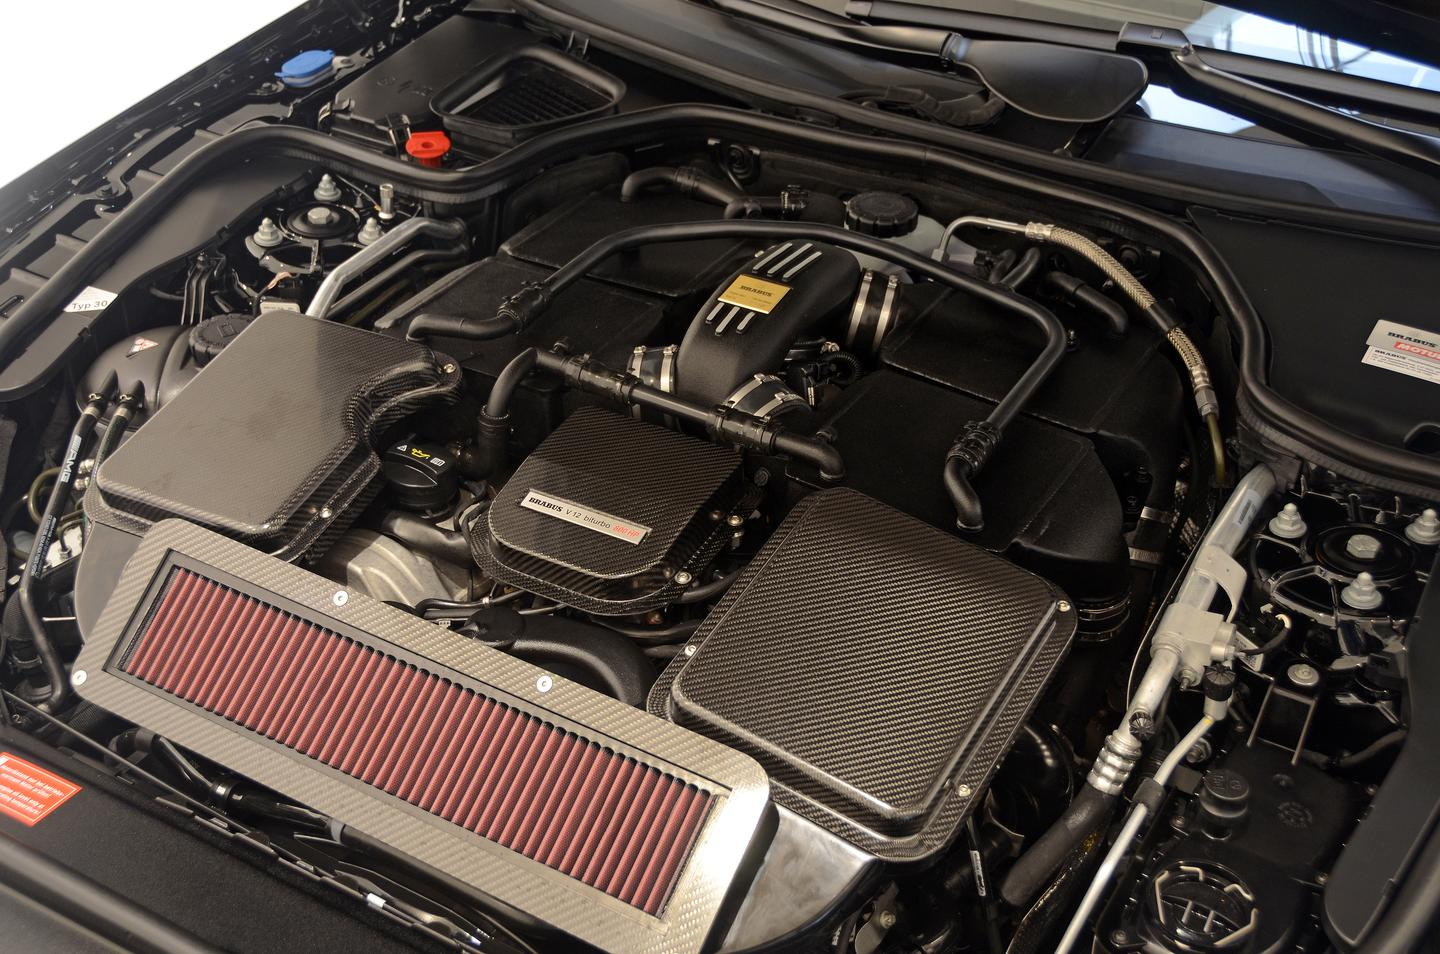 Brabus reworks Benz SL 65 AMG to the tune of 800 bhp